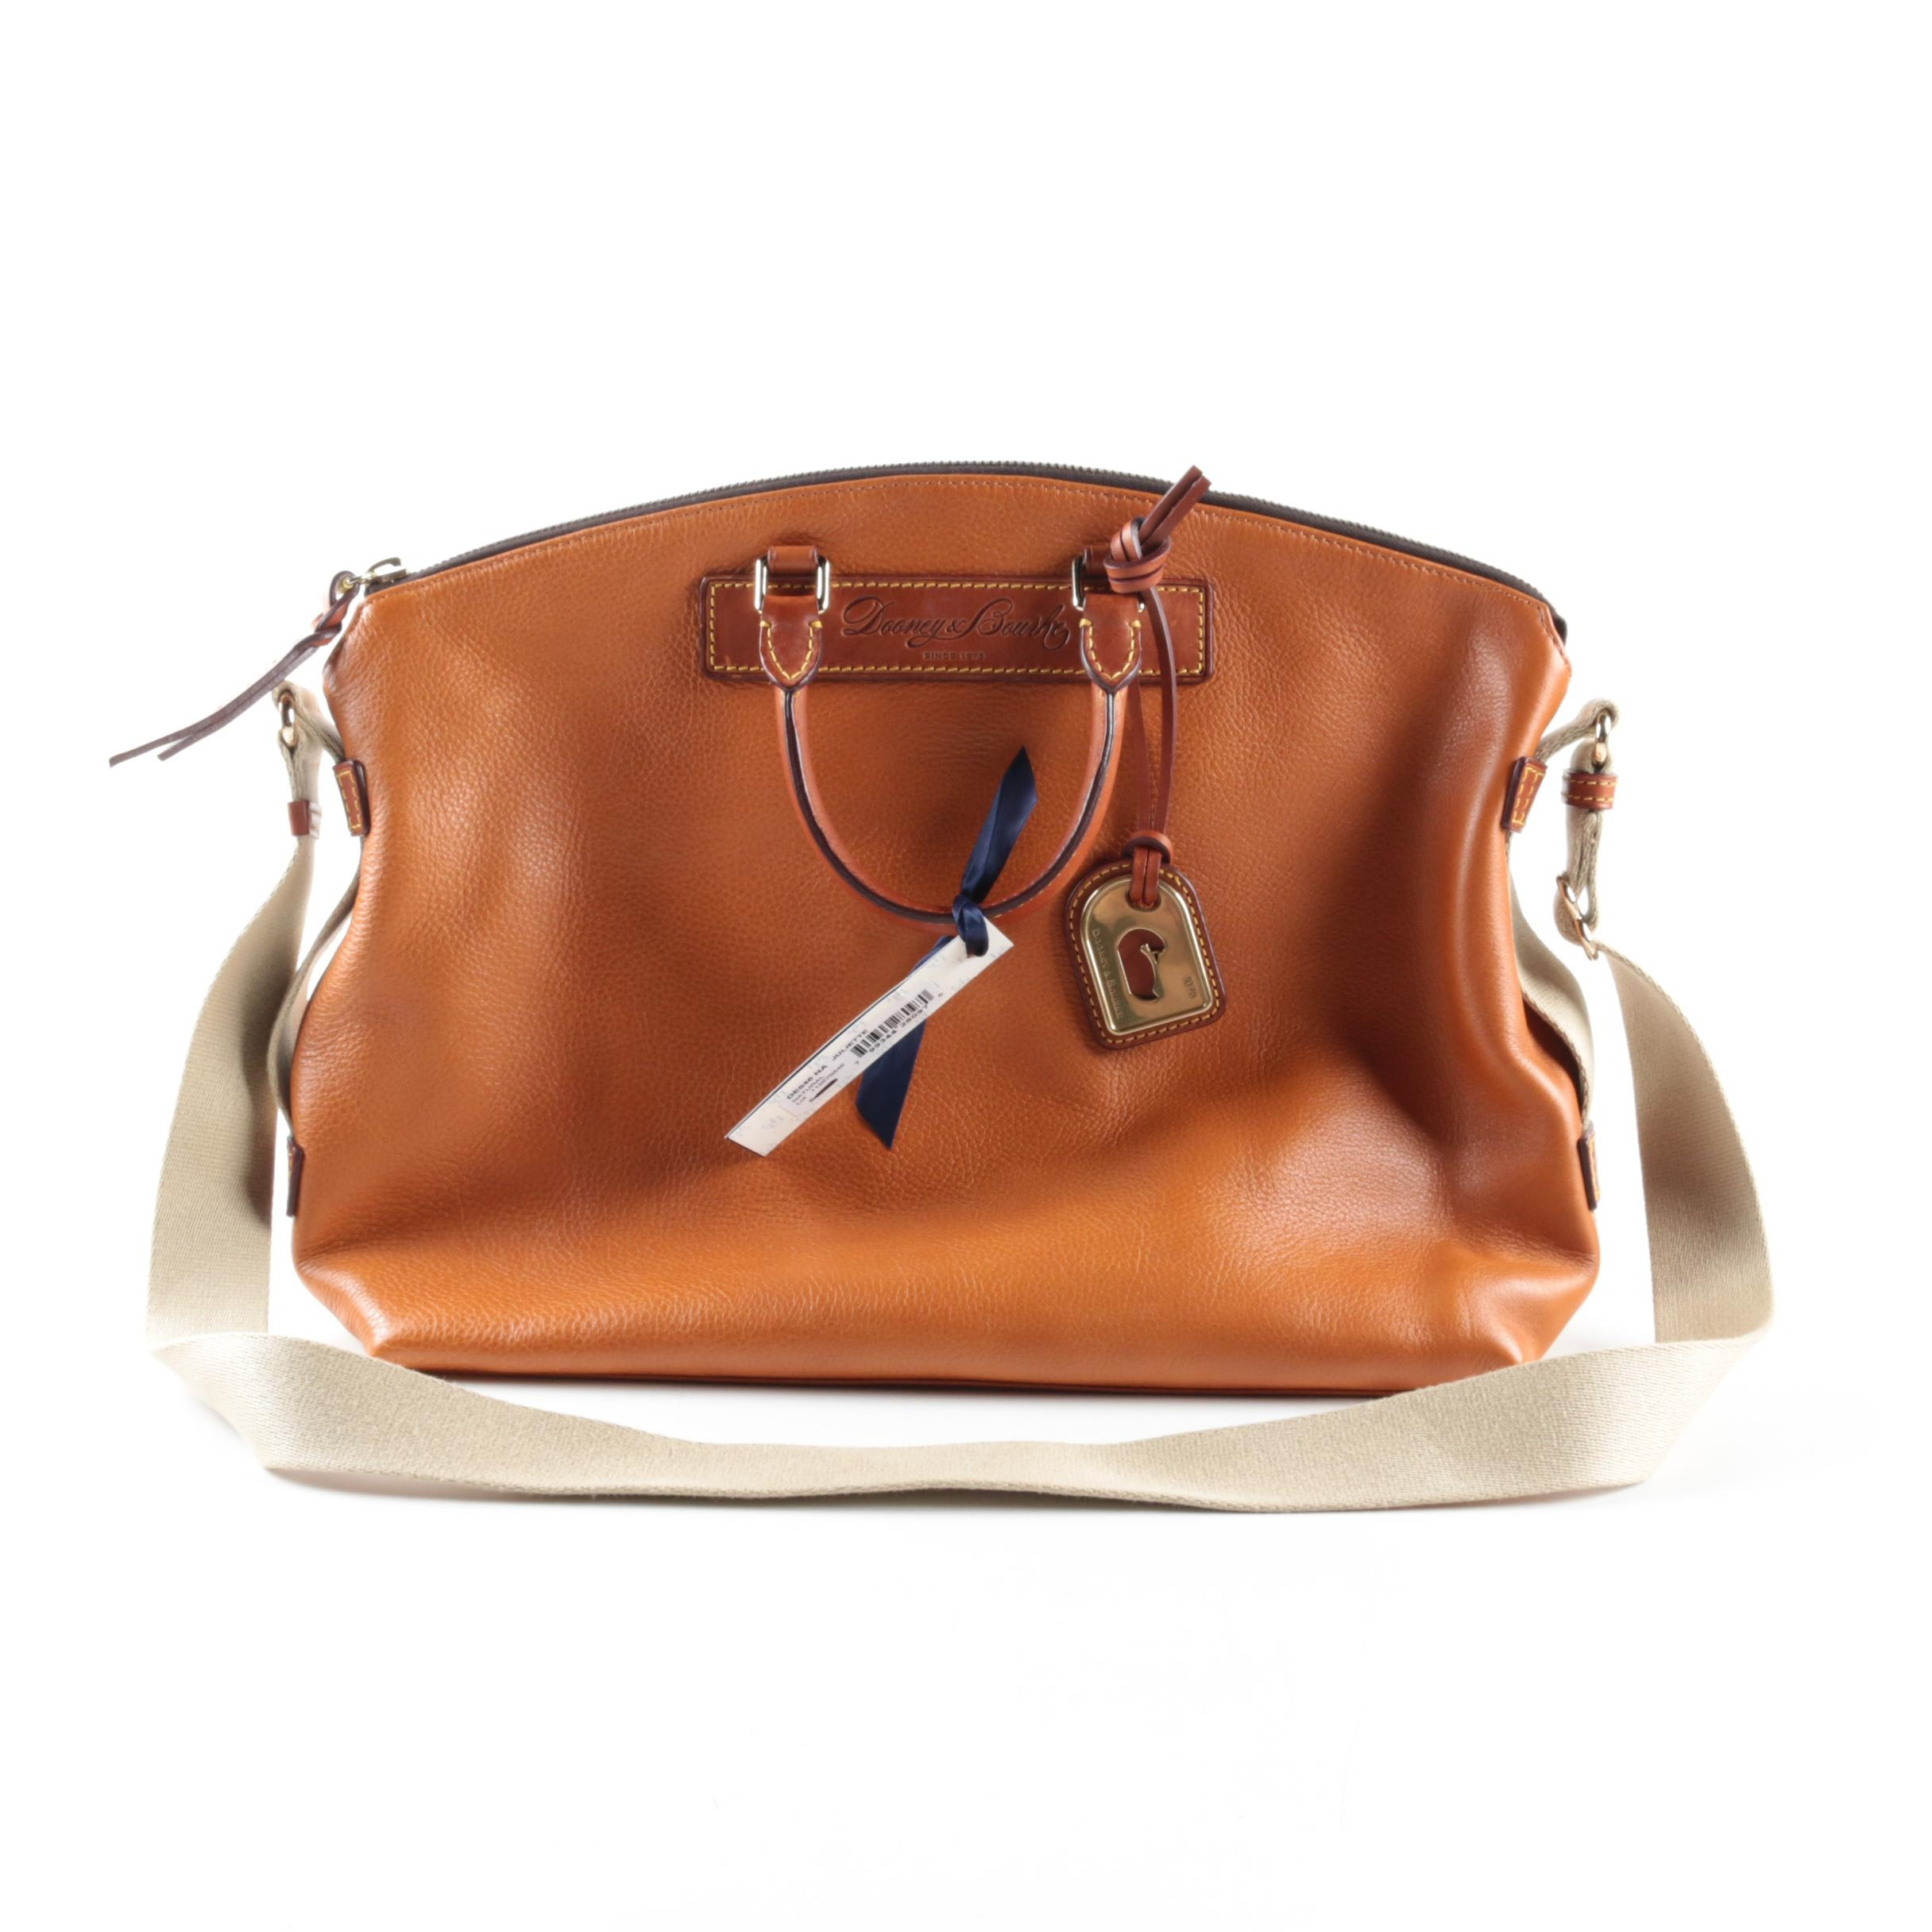 Dooney & Bourke Juliette Brown Leather Satchel